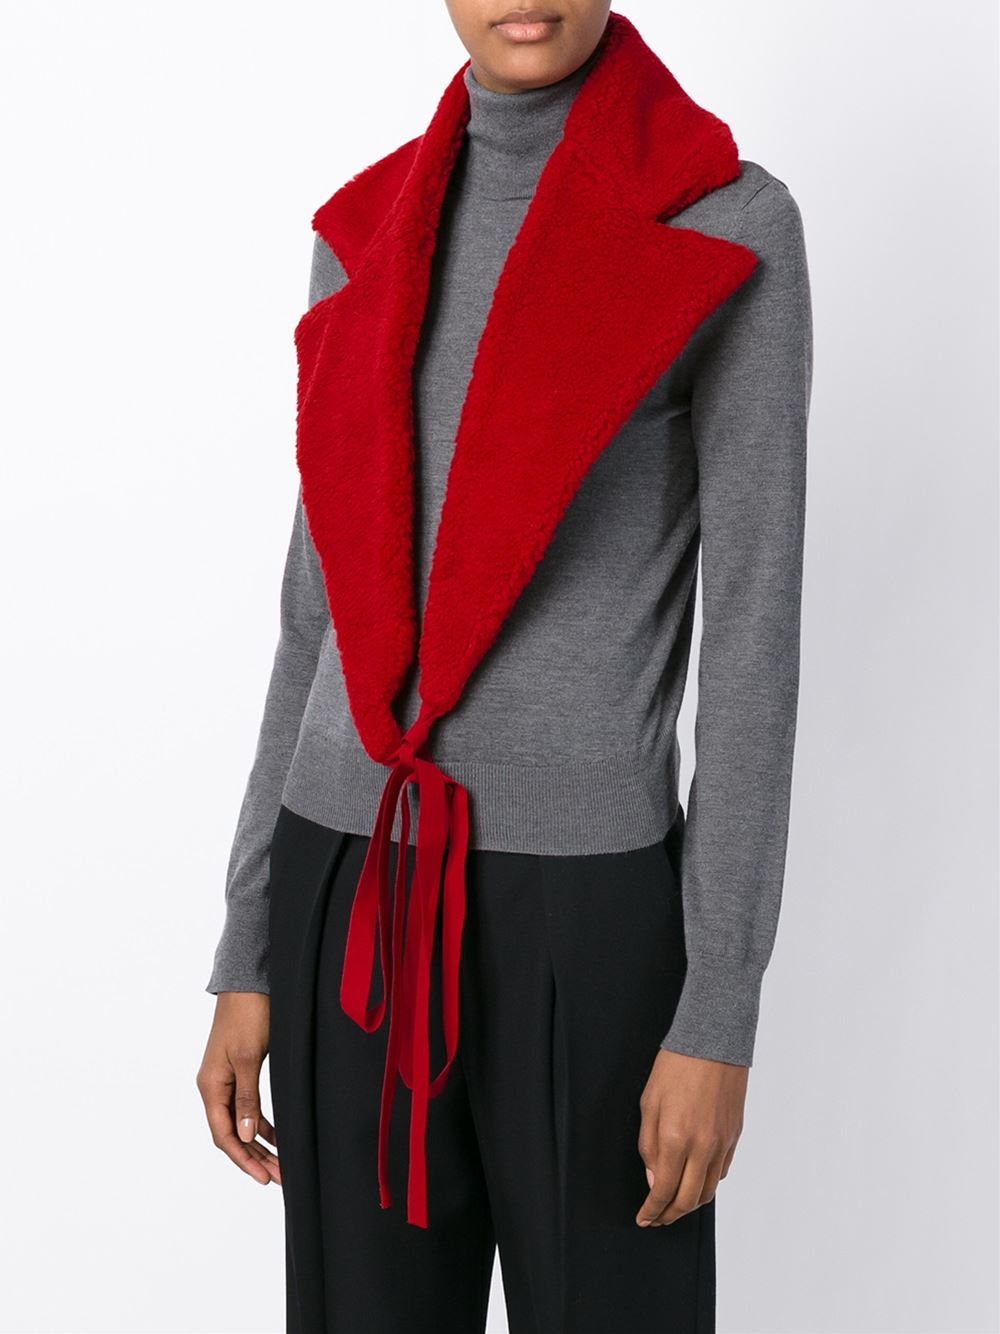 Mm6 by maison martin margiela faux shearling collar in red for Mm6 maison margiela